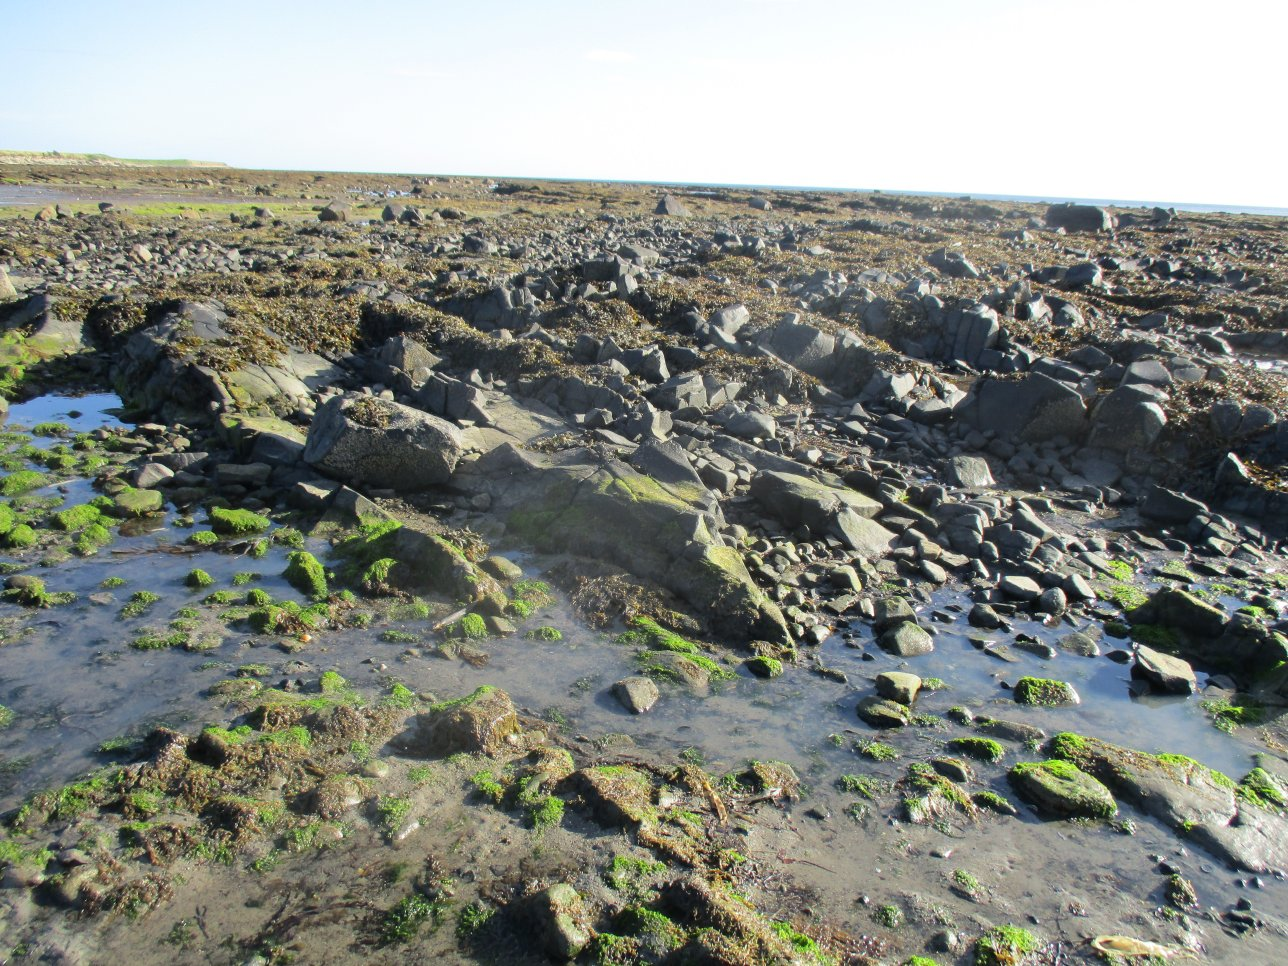 The Whin Sill at Boulmer